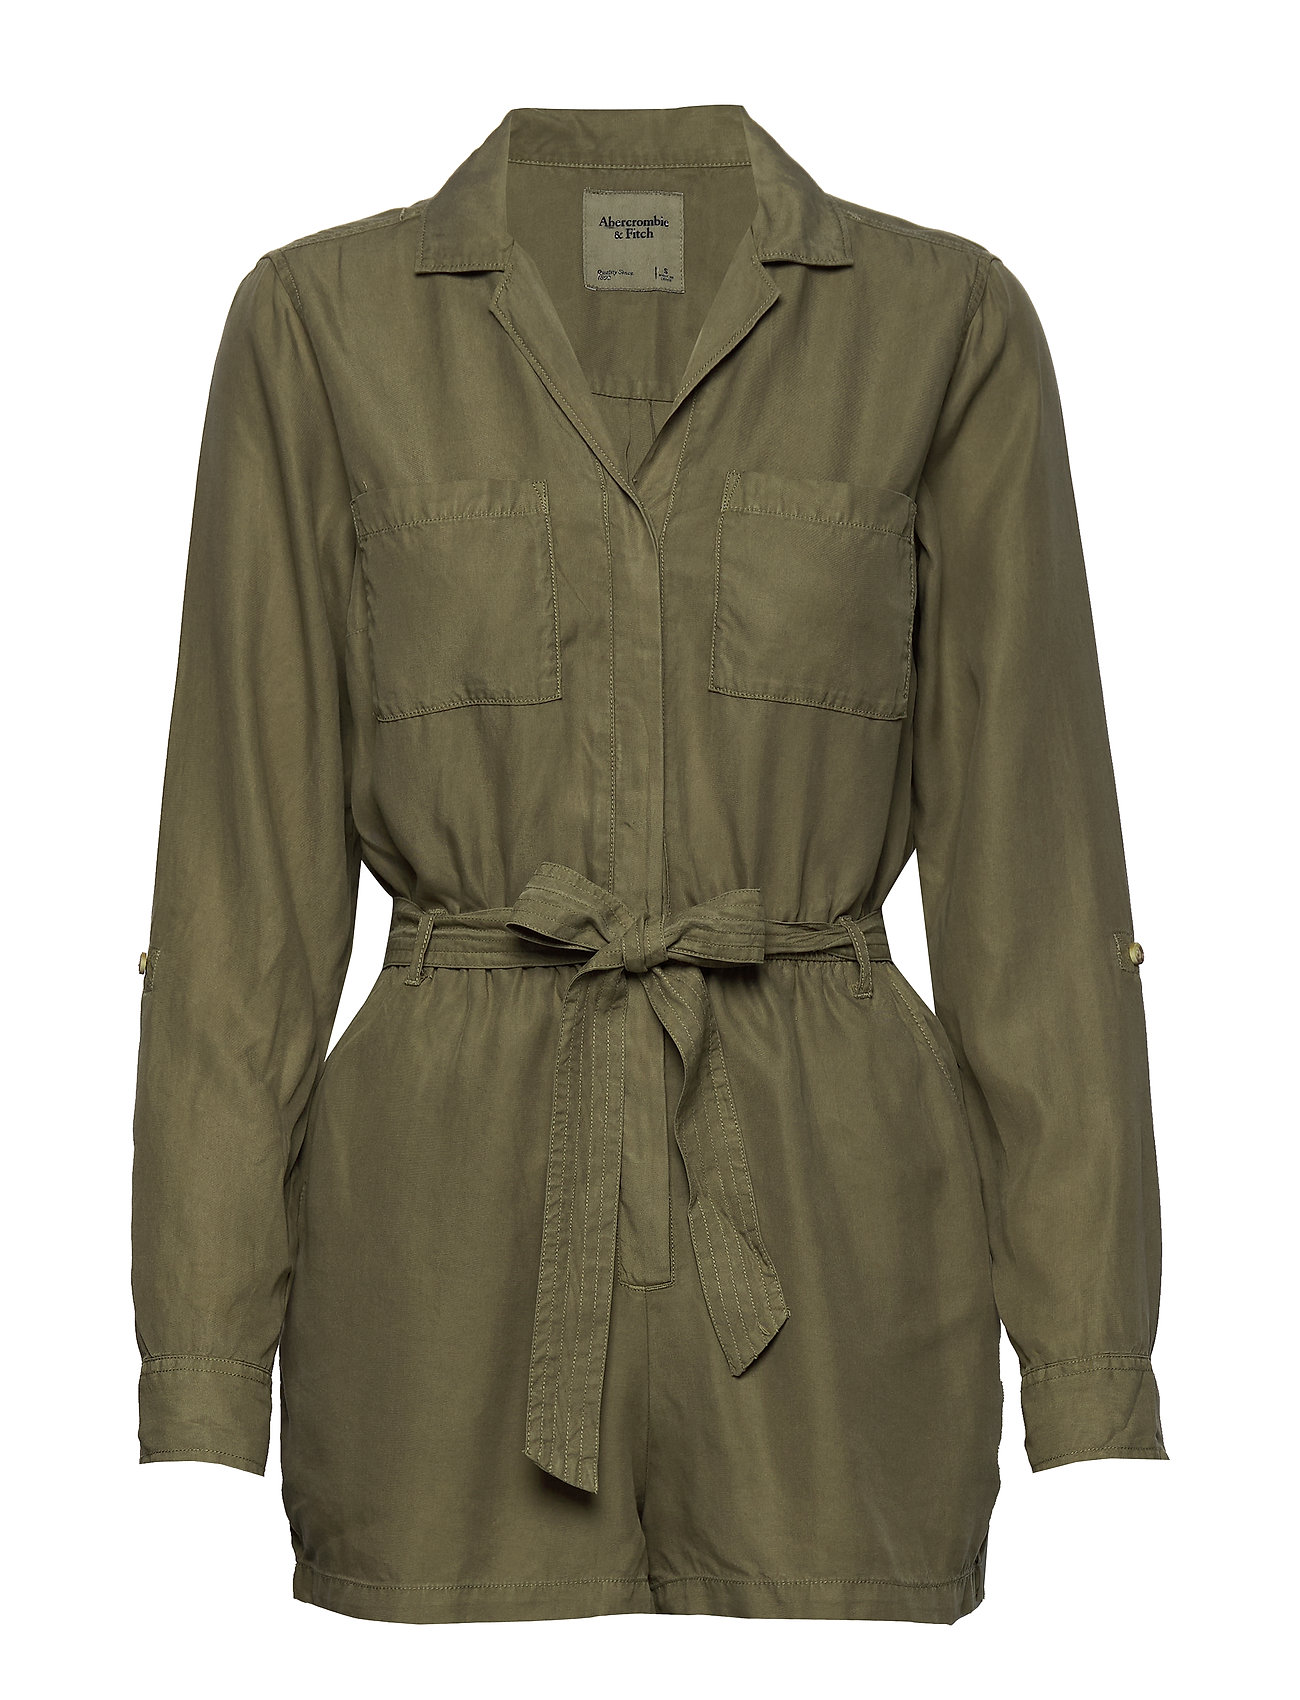 Abercrombie & Fitch Button Utility Romp - OLIVE DD